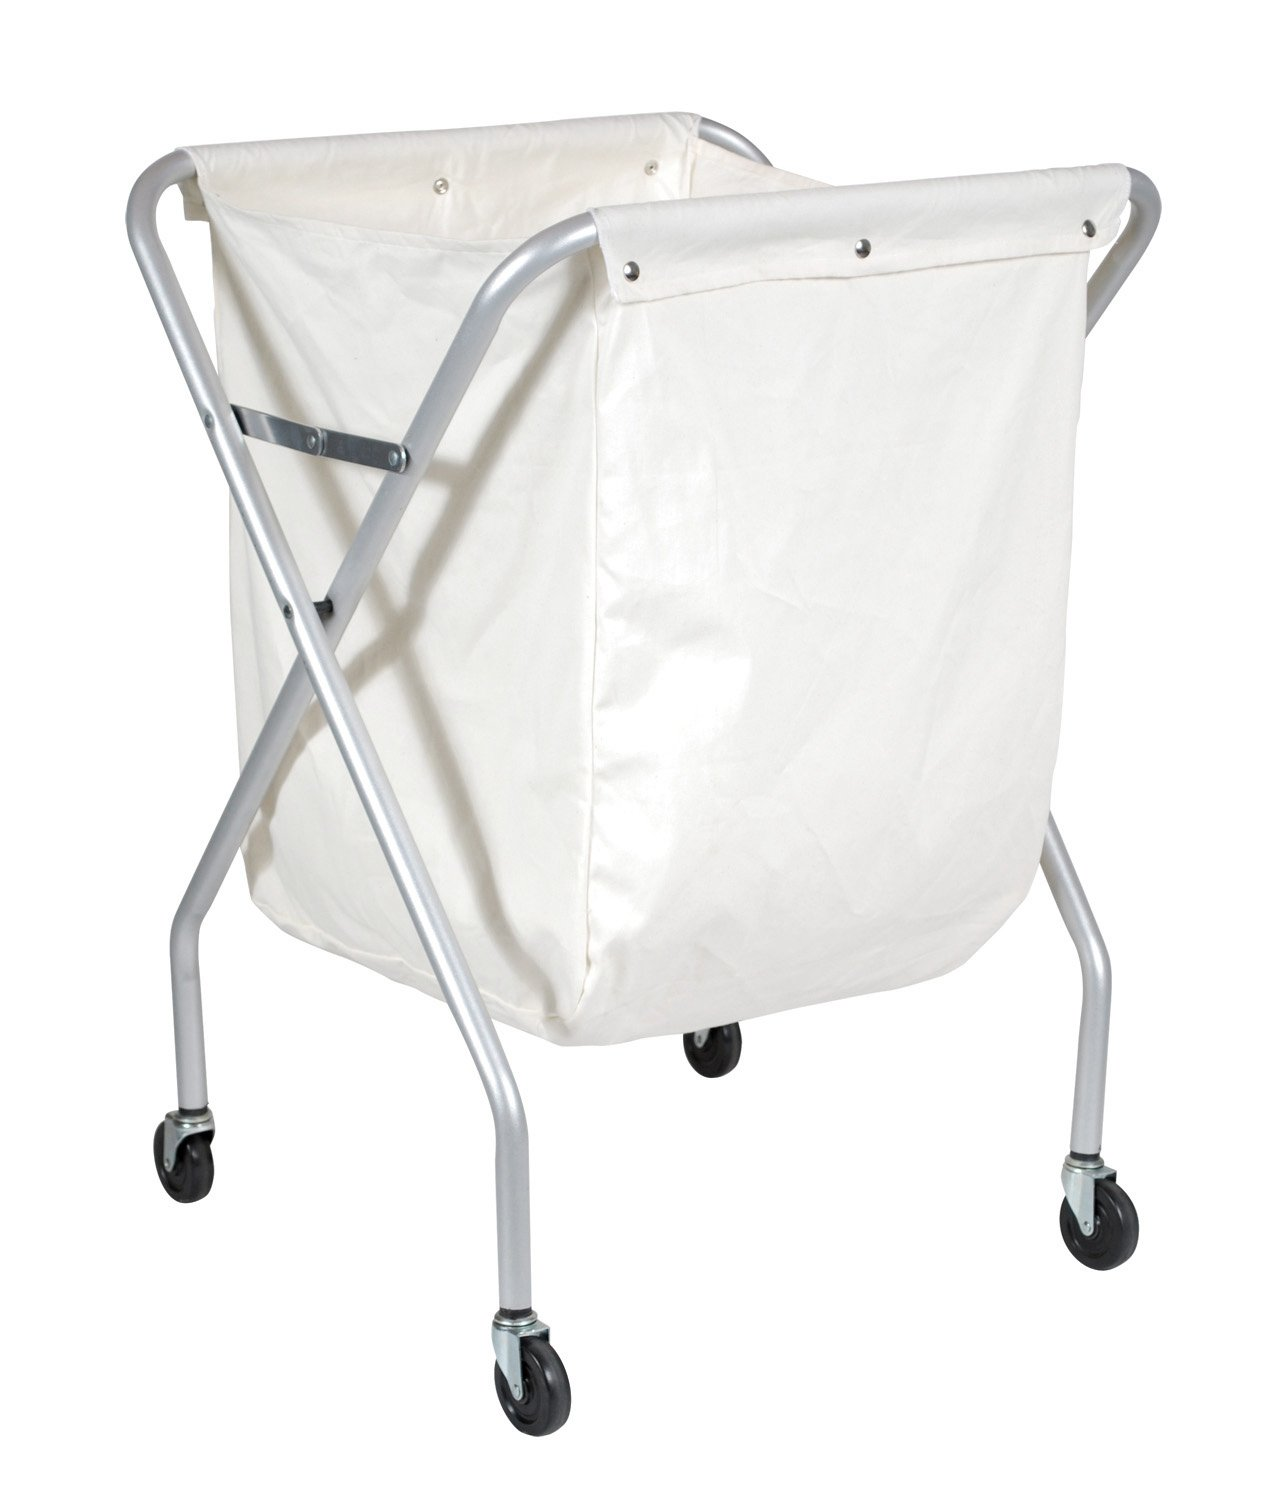 Ex-Cell Kaiser 460 W CHR Laundry Caddy Steel Laundry Waste Collector, 24-1/2'' Length x 21-1/4'' Width x 35'' Height